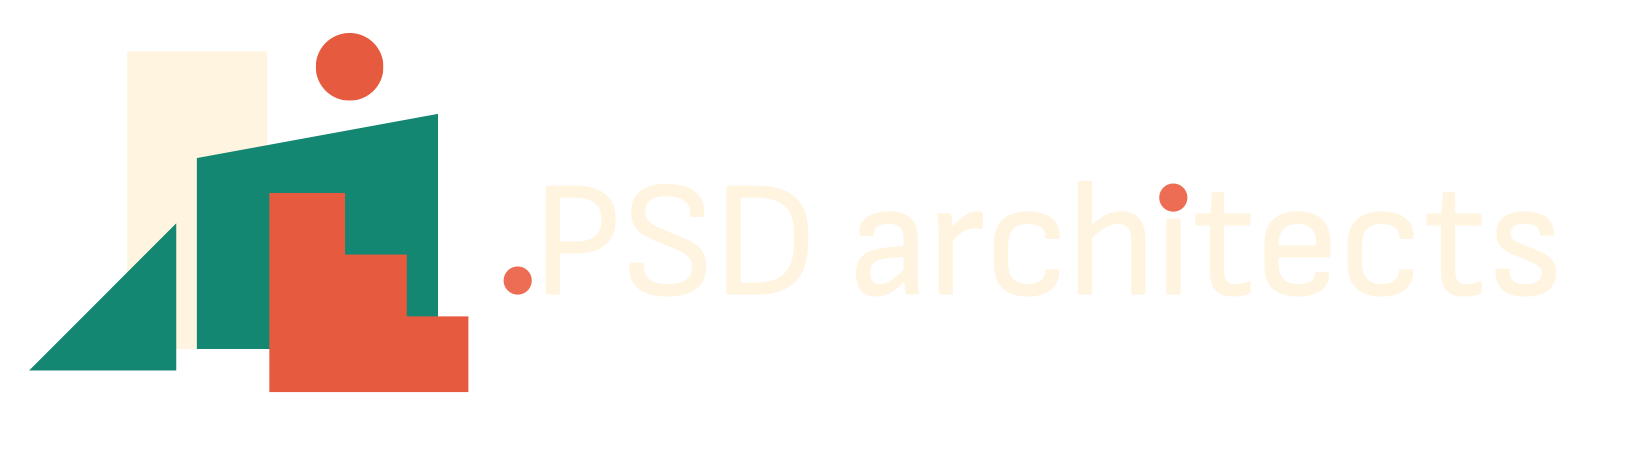 PSD Architects